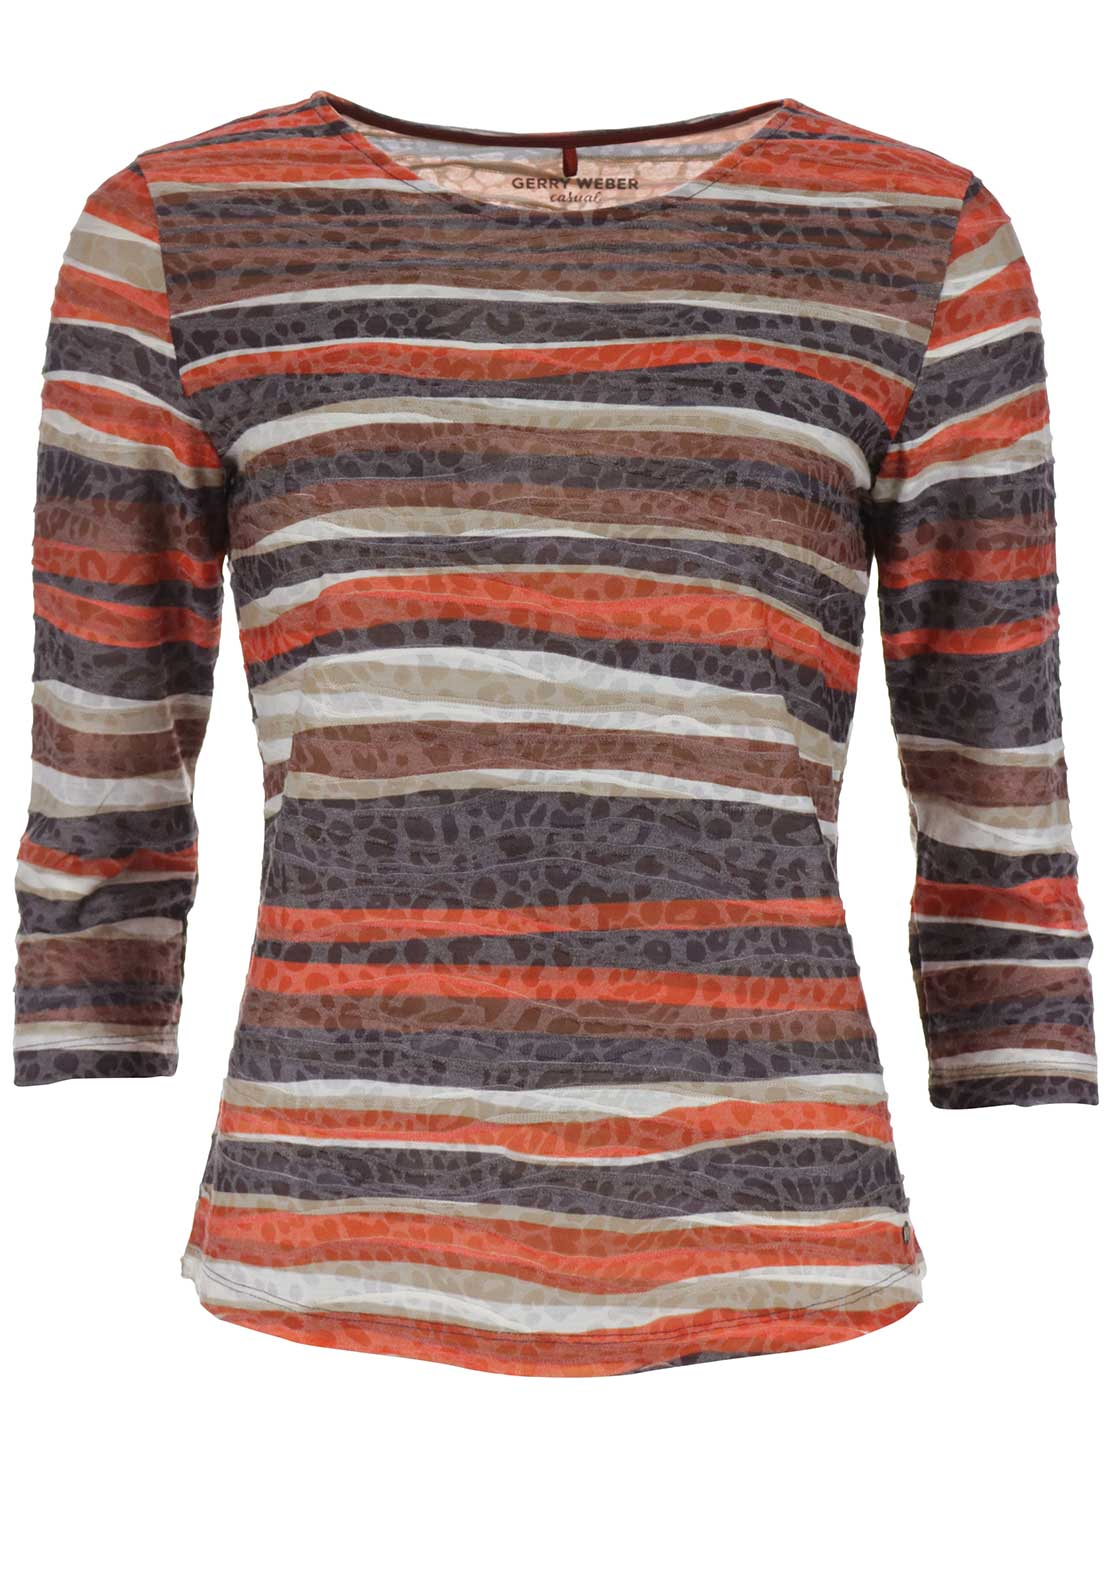 Gerry Weber Striped Top, Rust